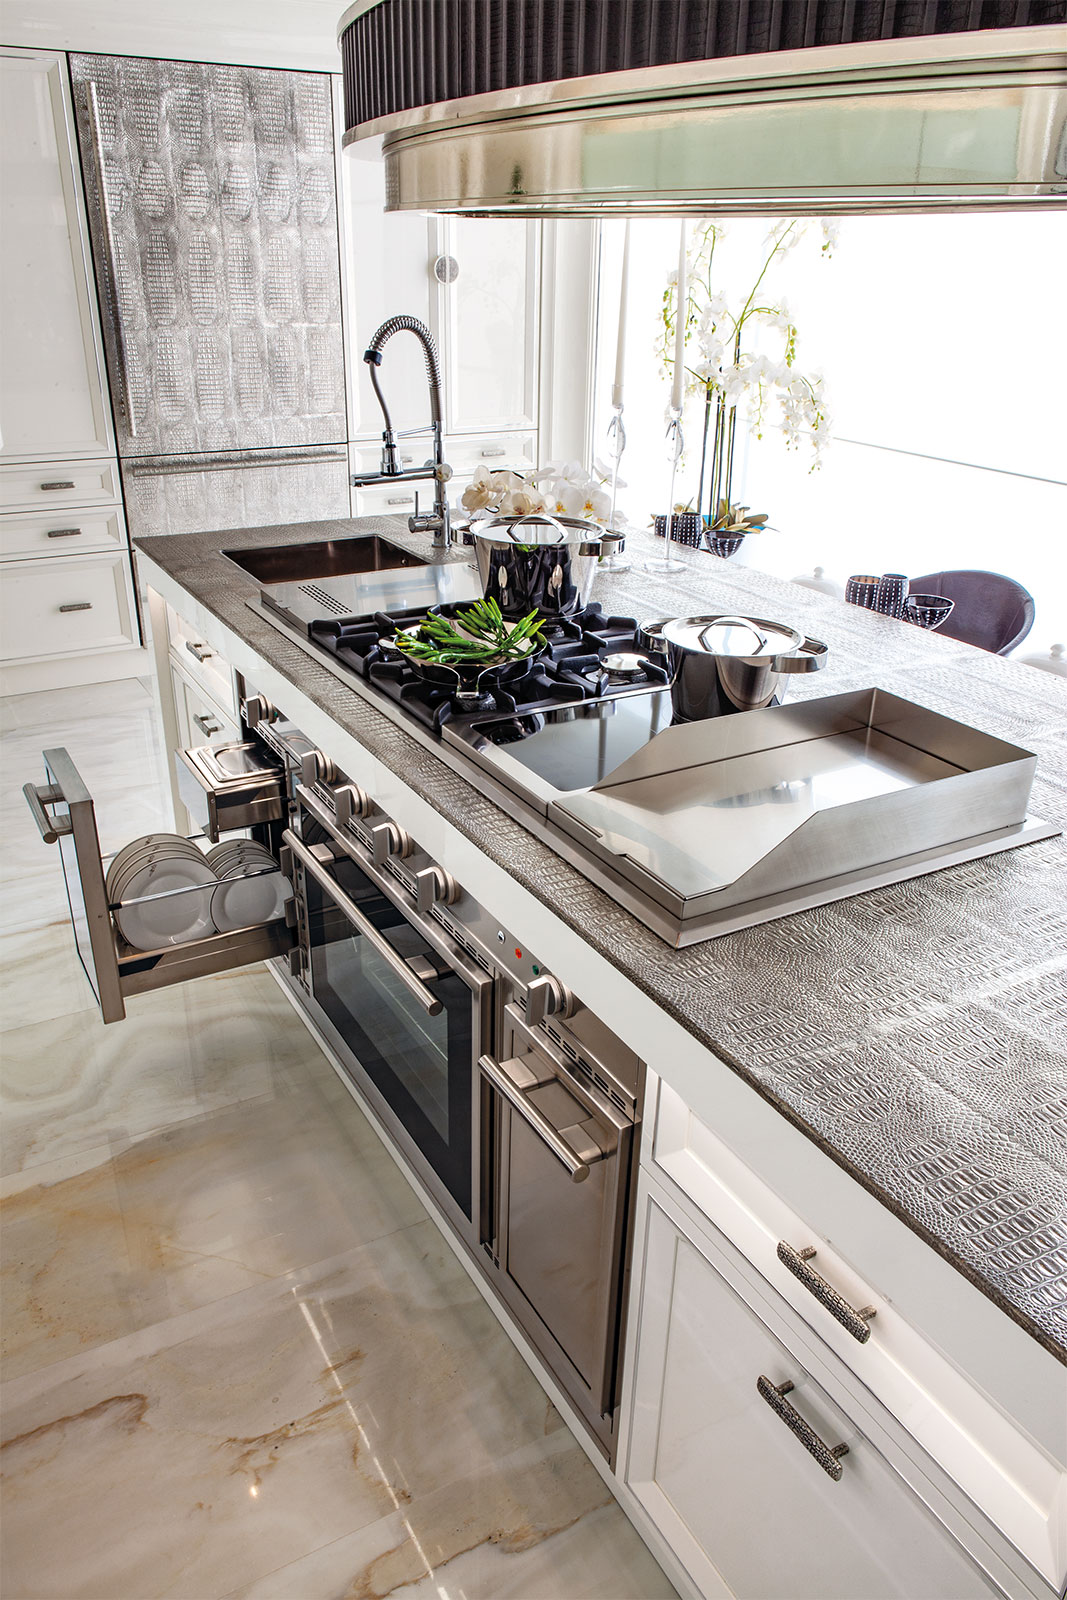 Faoma The Met kitchen island